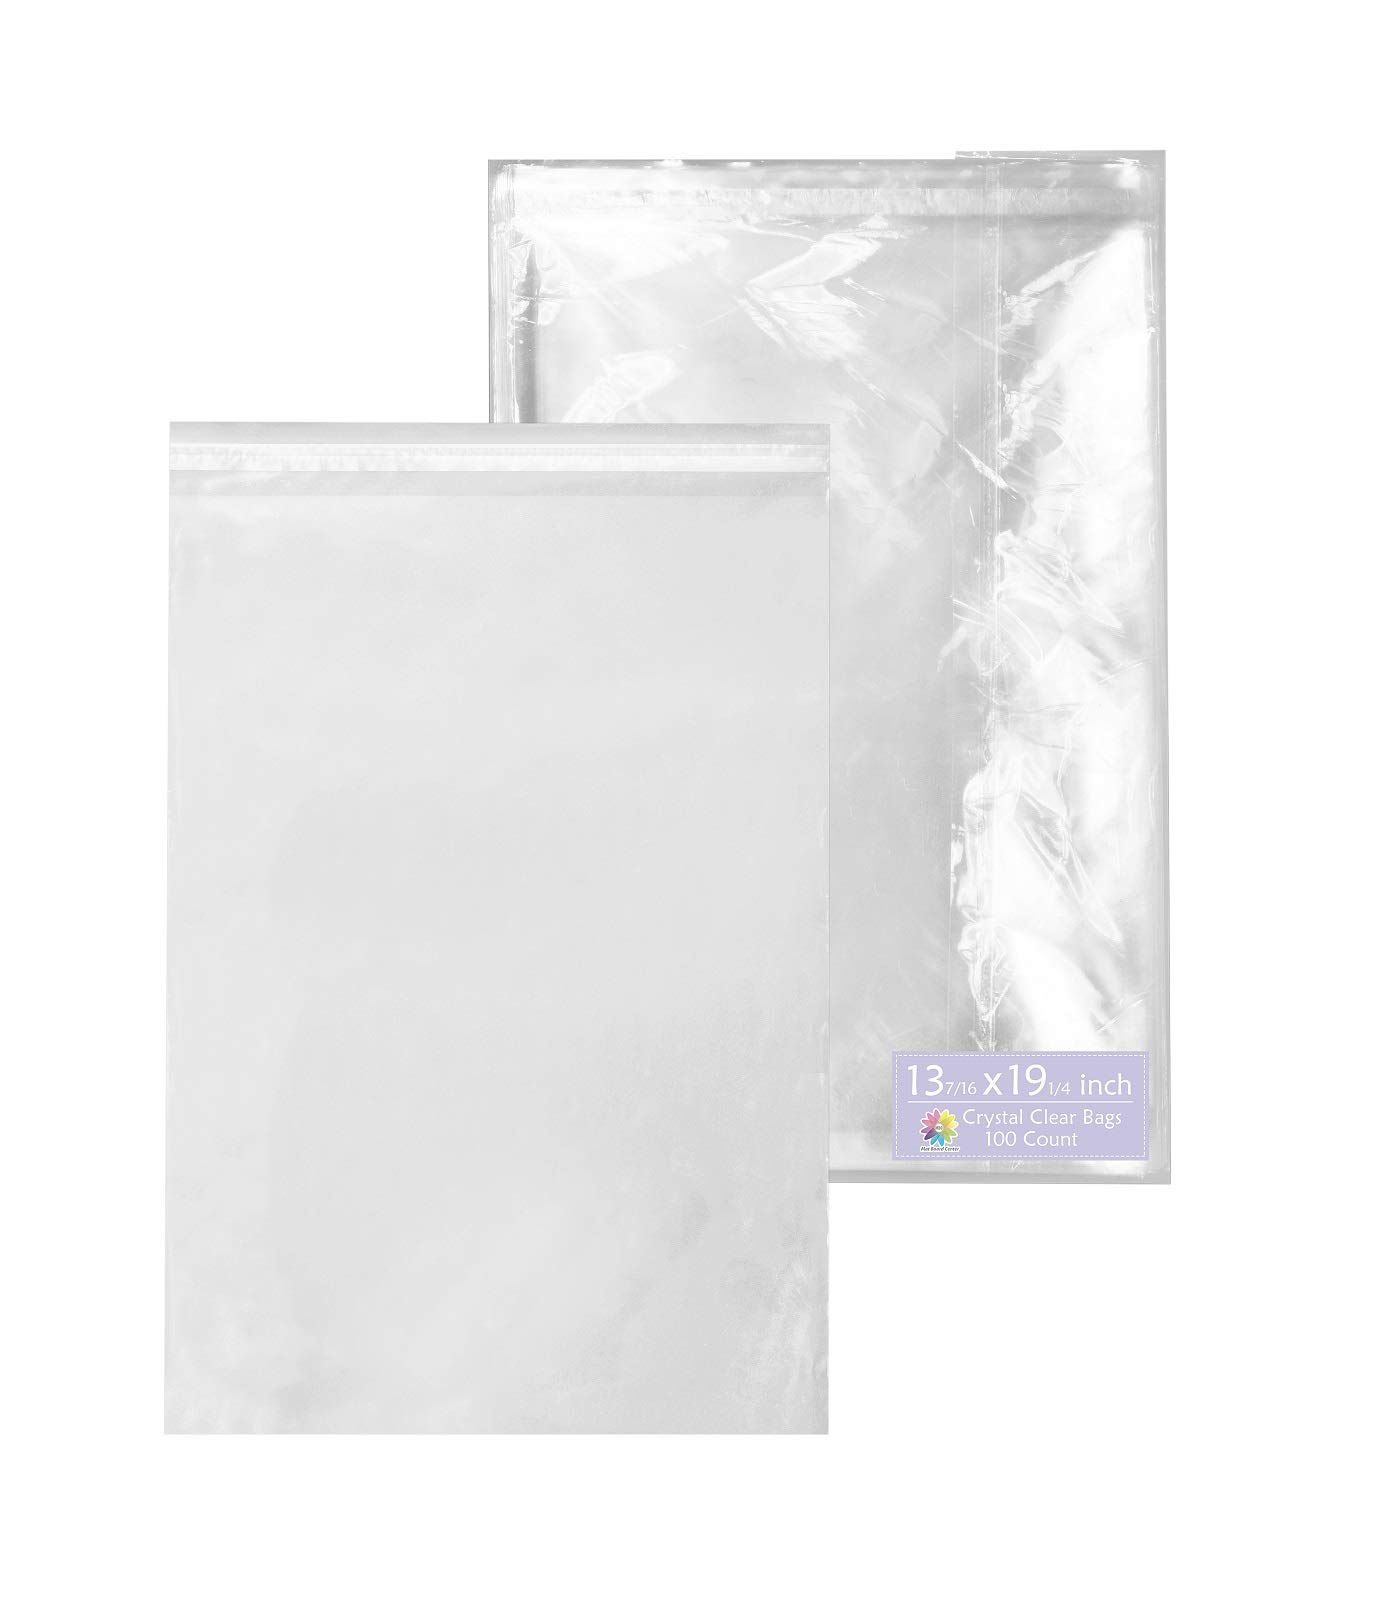 Mat Board Center, 13-7/16'' x 19-1/4'' Crystal Clear, Protective Polypropylene Storage Bags, with Flap, 100 Bags